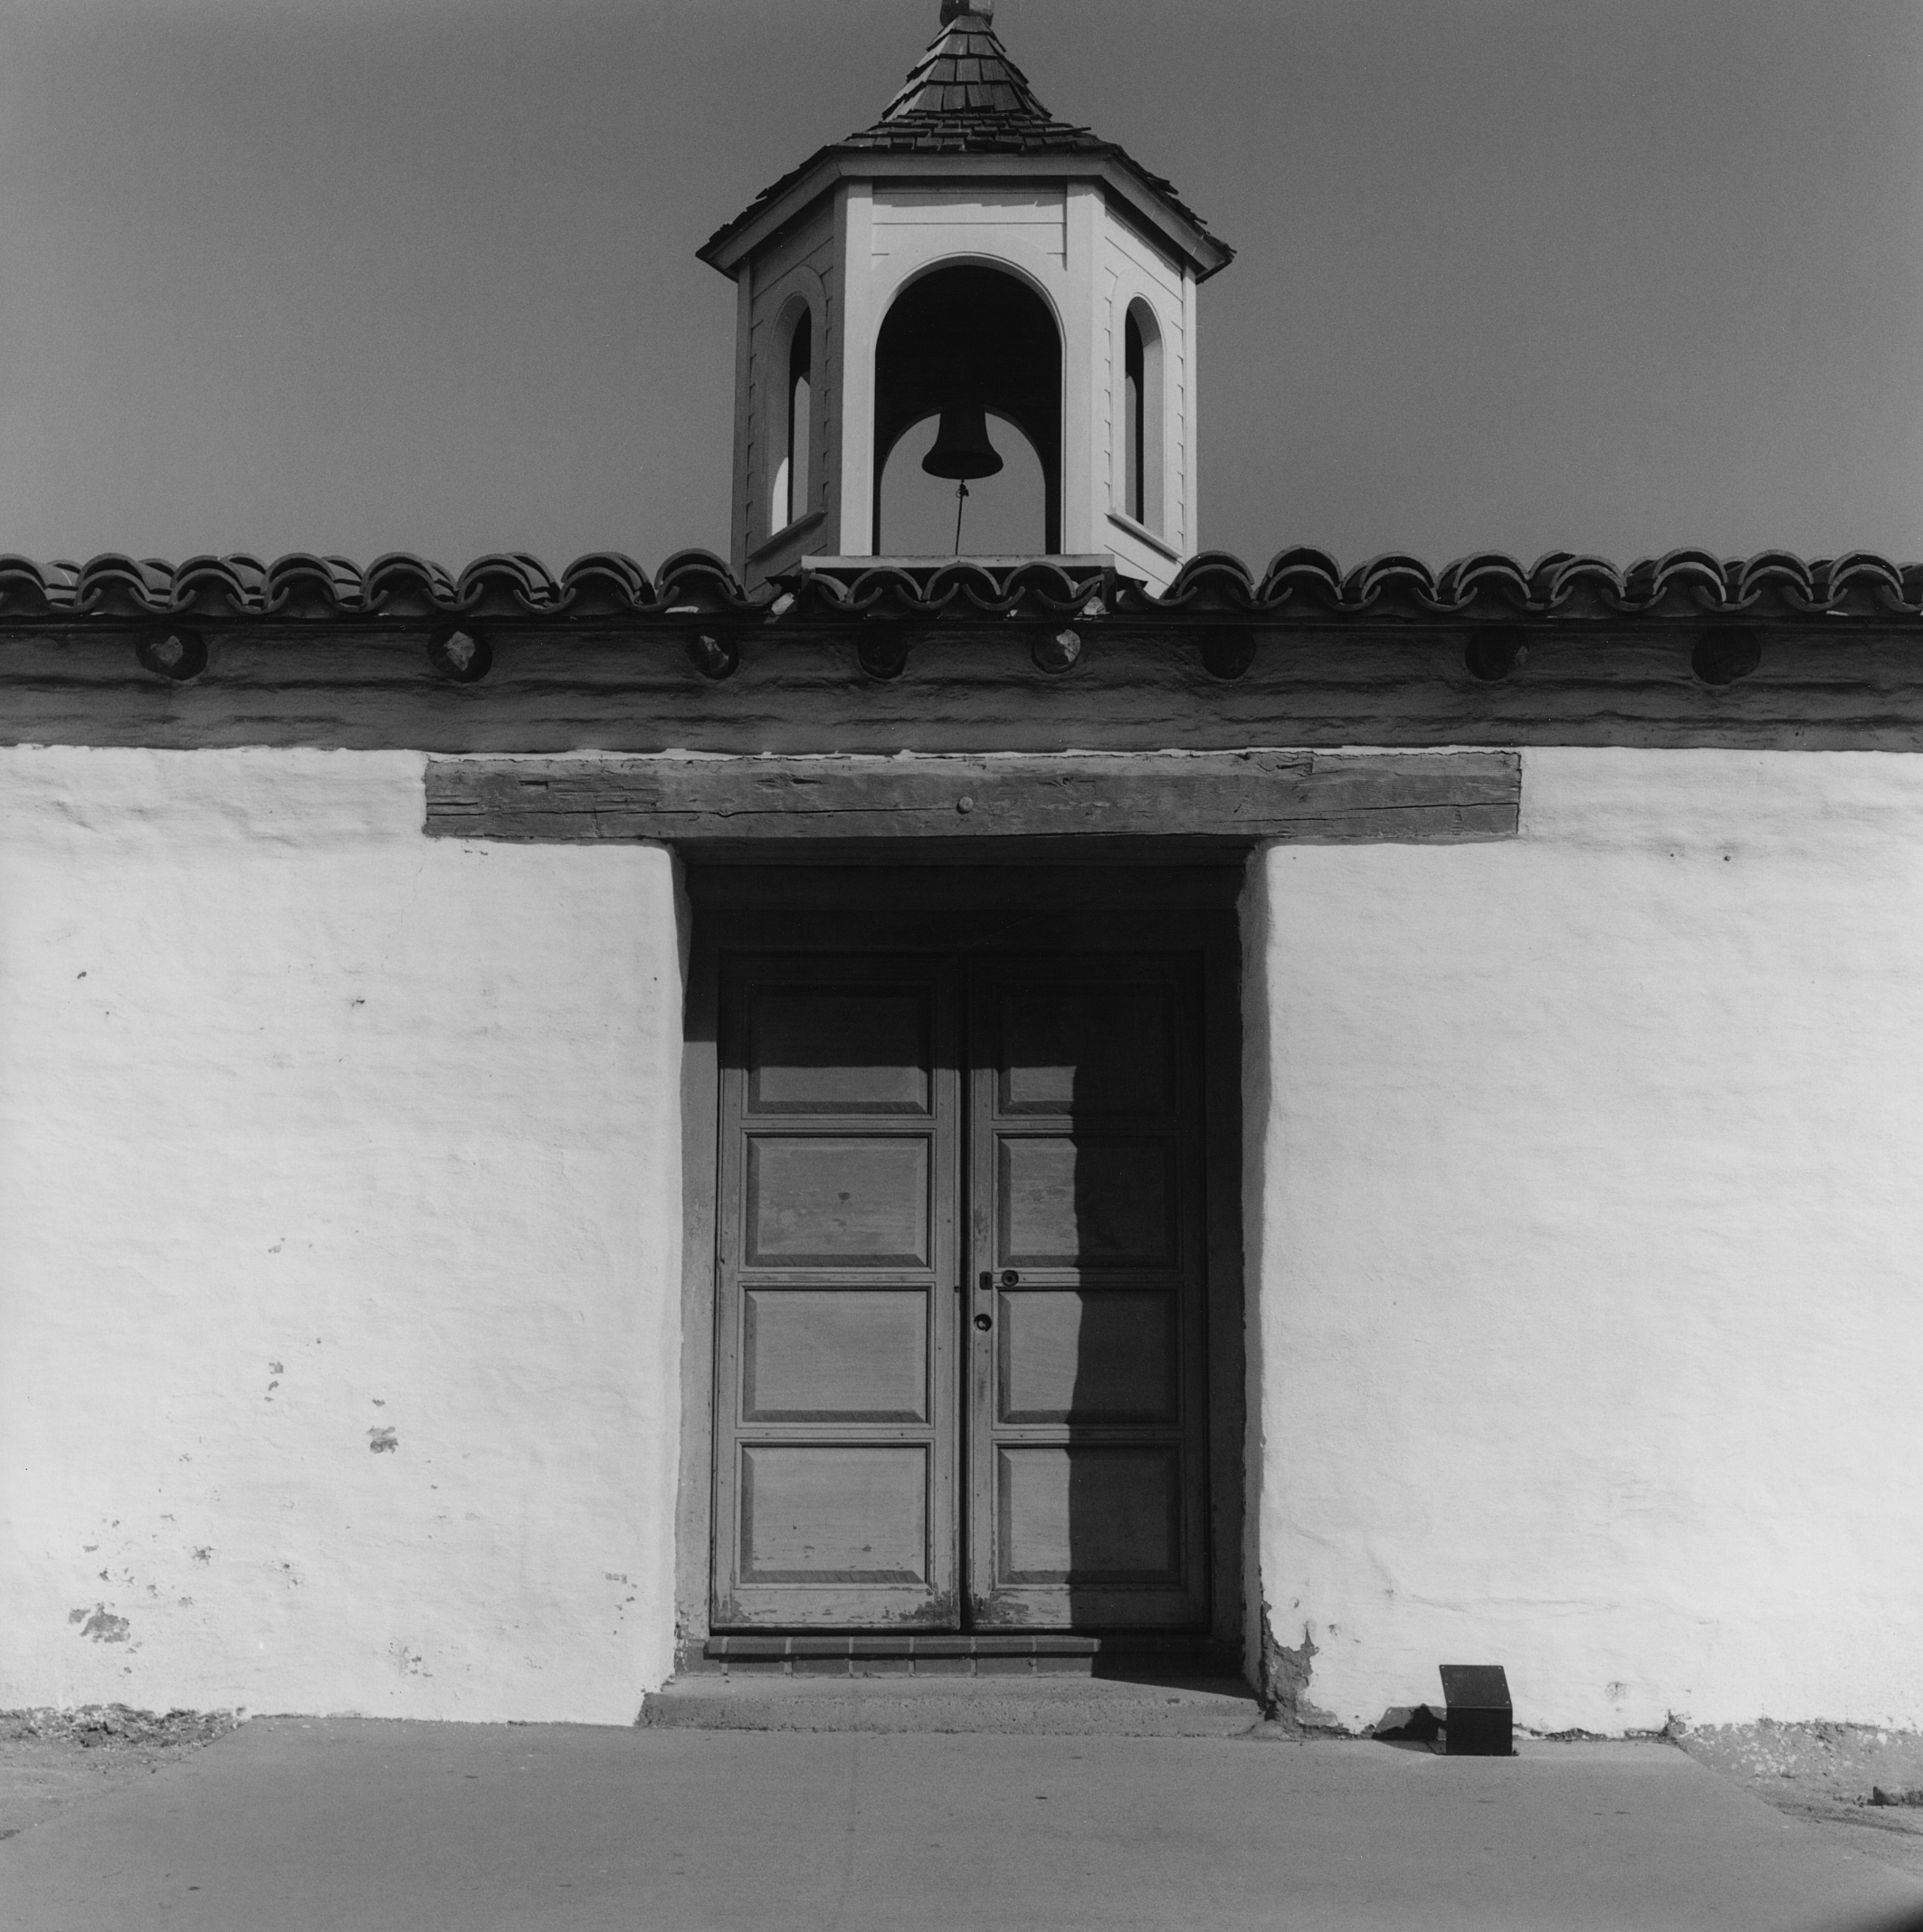 House Bell Tower, Old City, San Diego, California, 2009